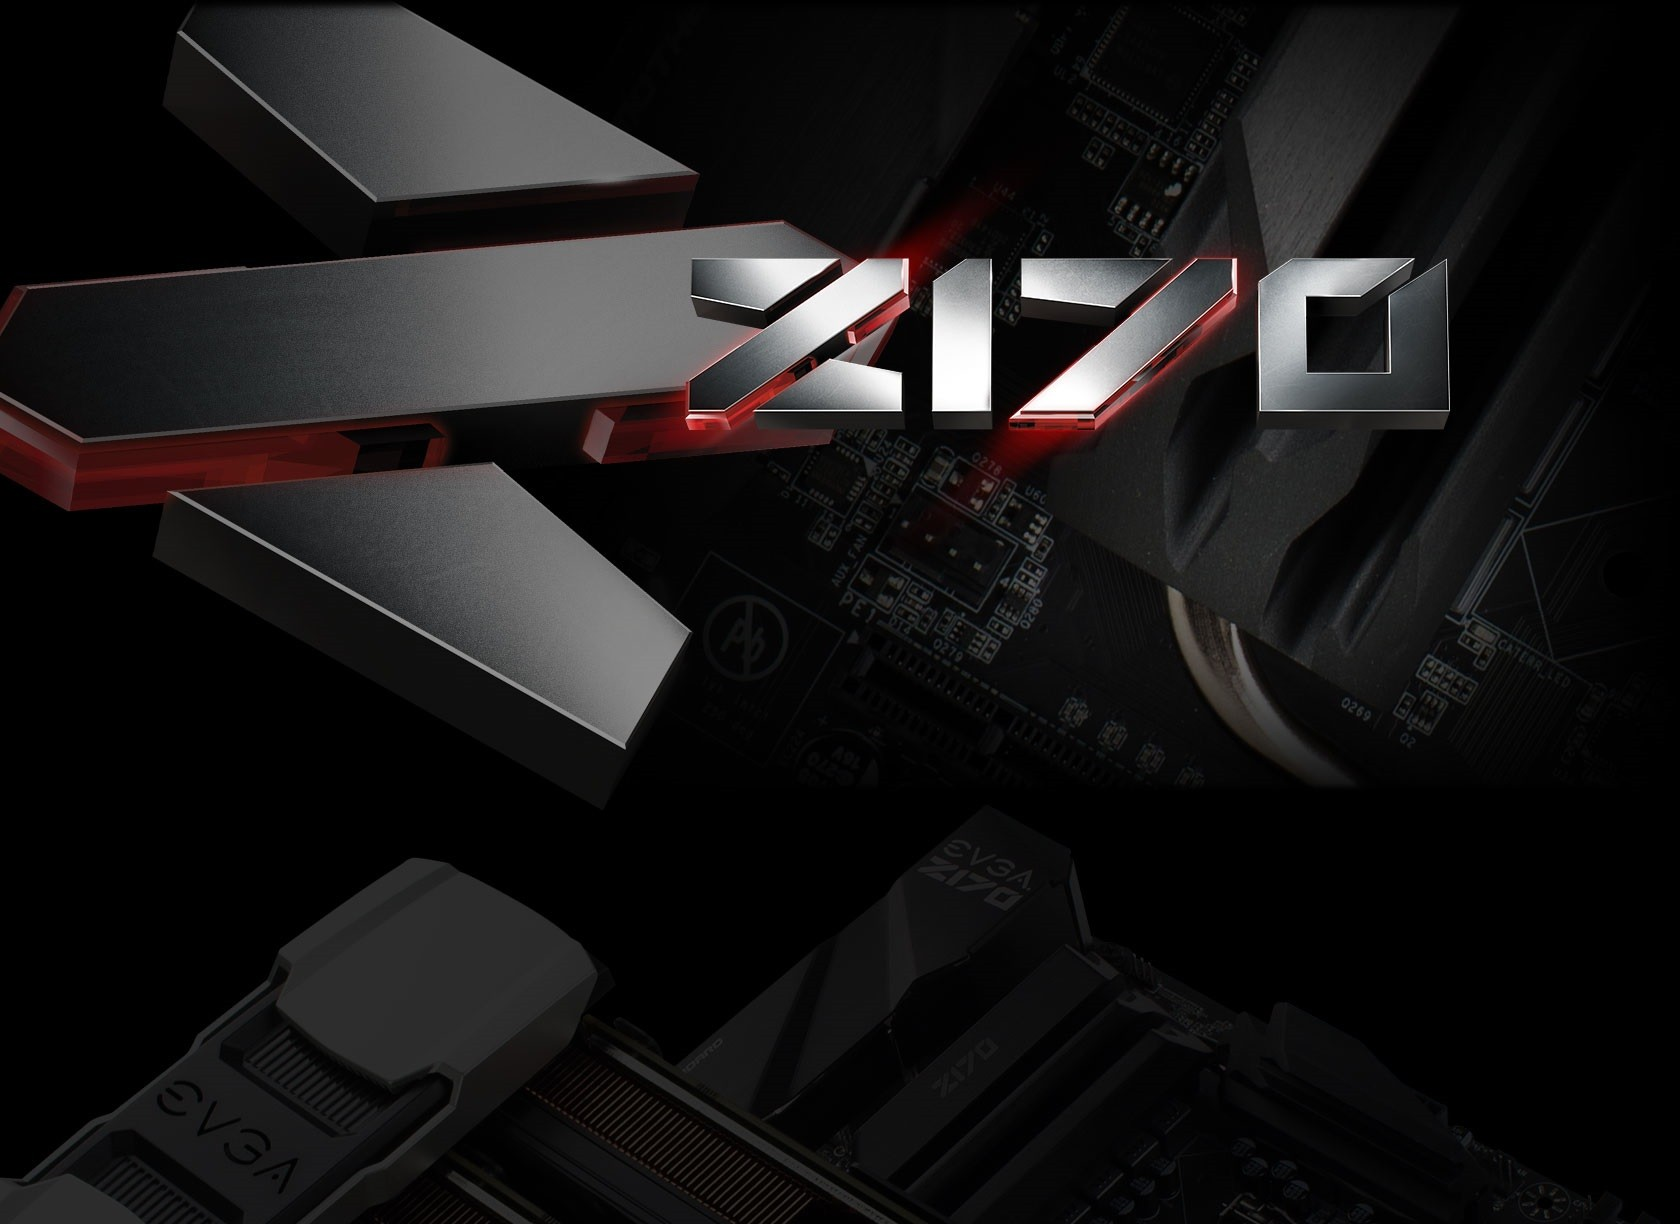 Download BIOS 1 05 for EVGA Z170 Classified, FTW, and